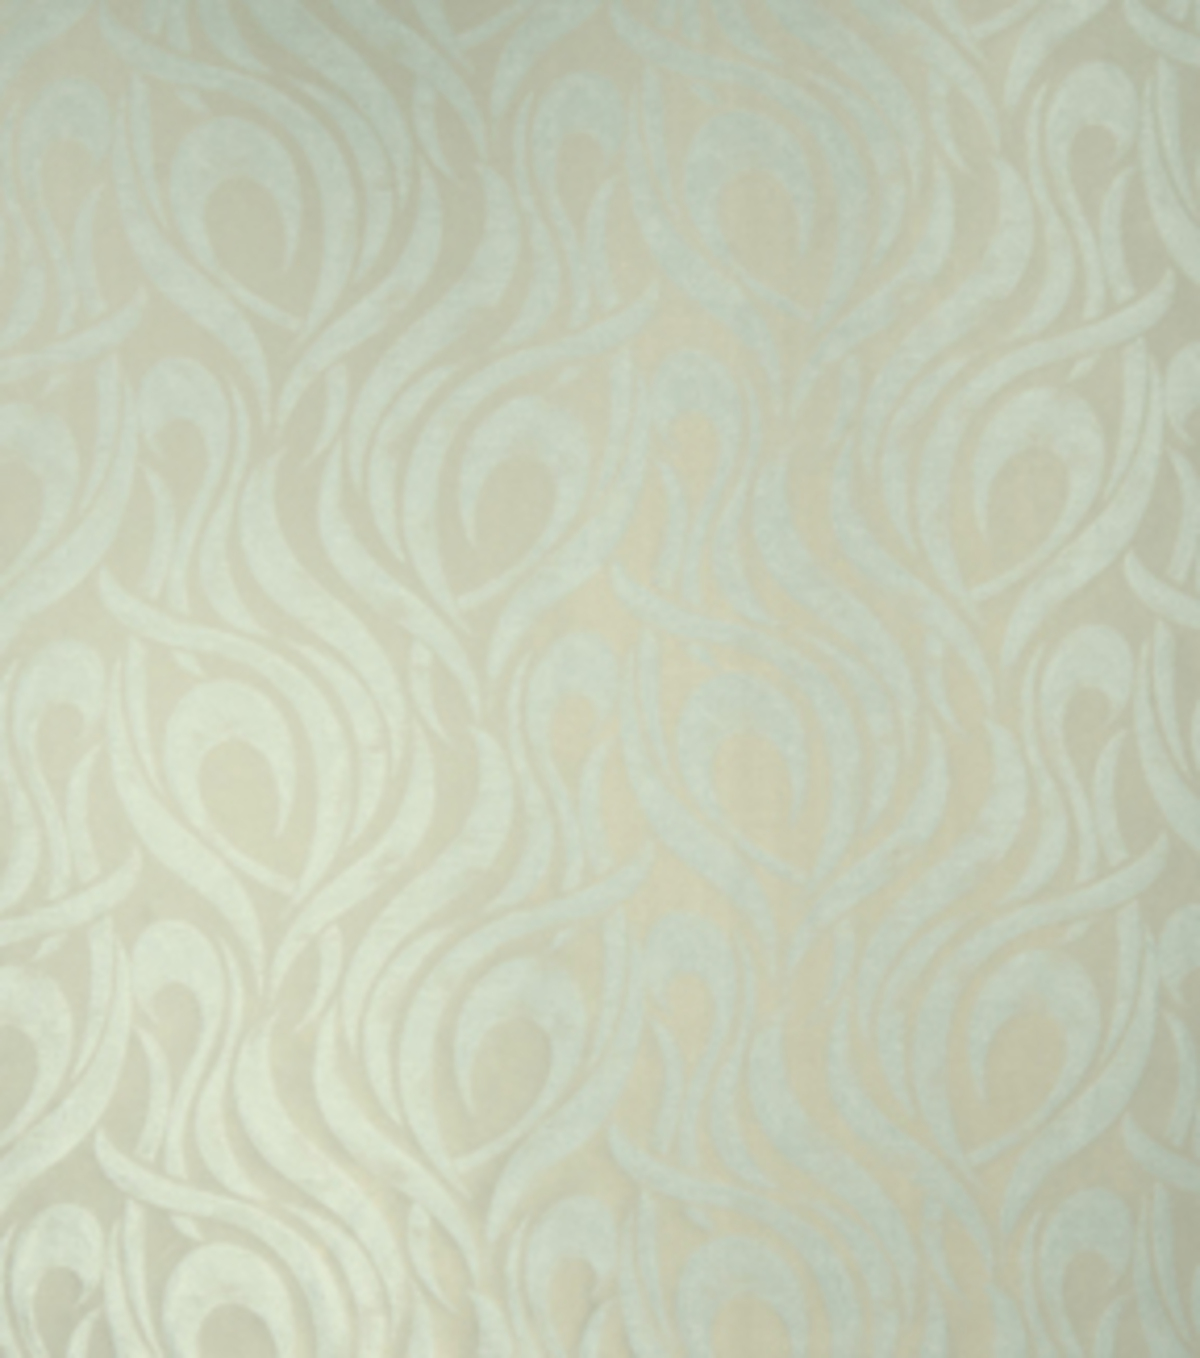 Home Decor 8\u0022x8\u0022 Fabric Swatch-Eaton Square Eisenhower Chalk